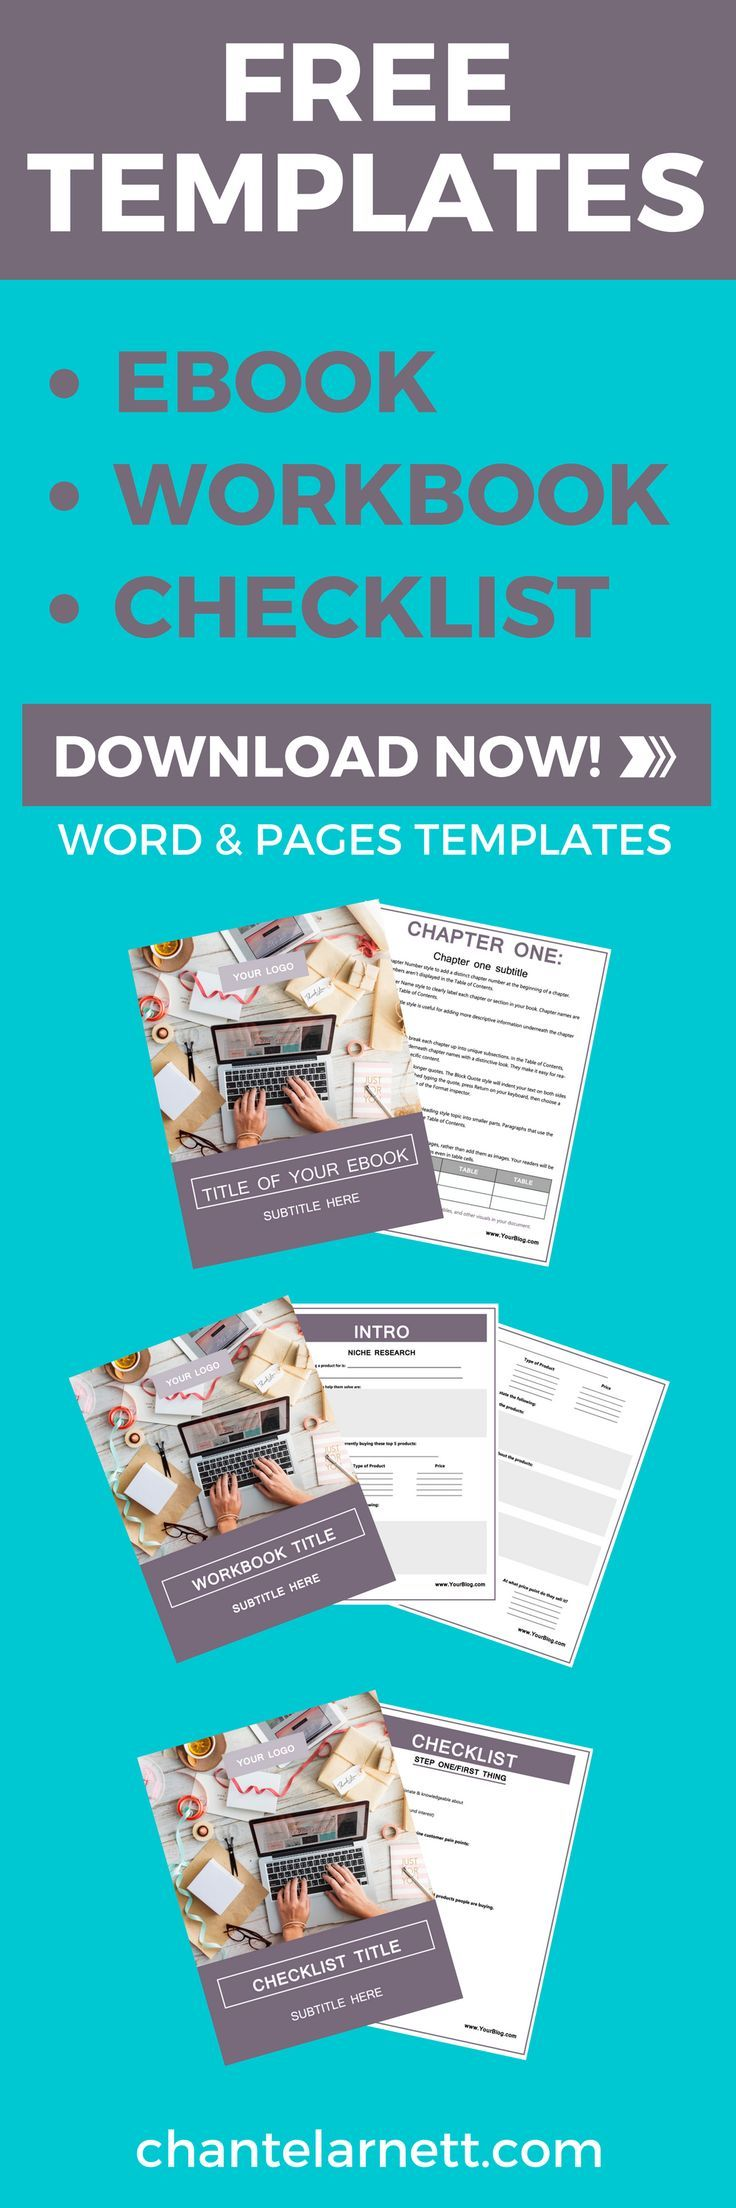 free editable checklist ebook and workbook templates in word and